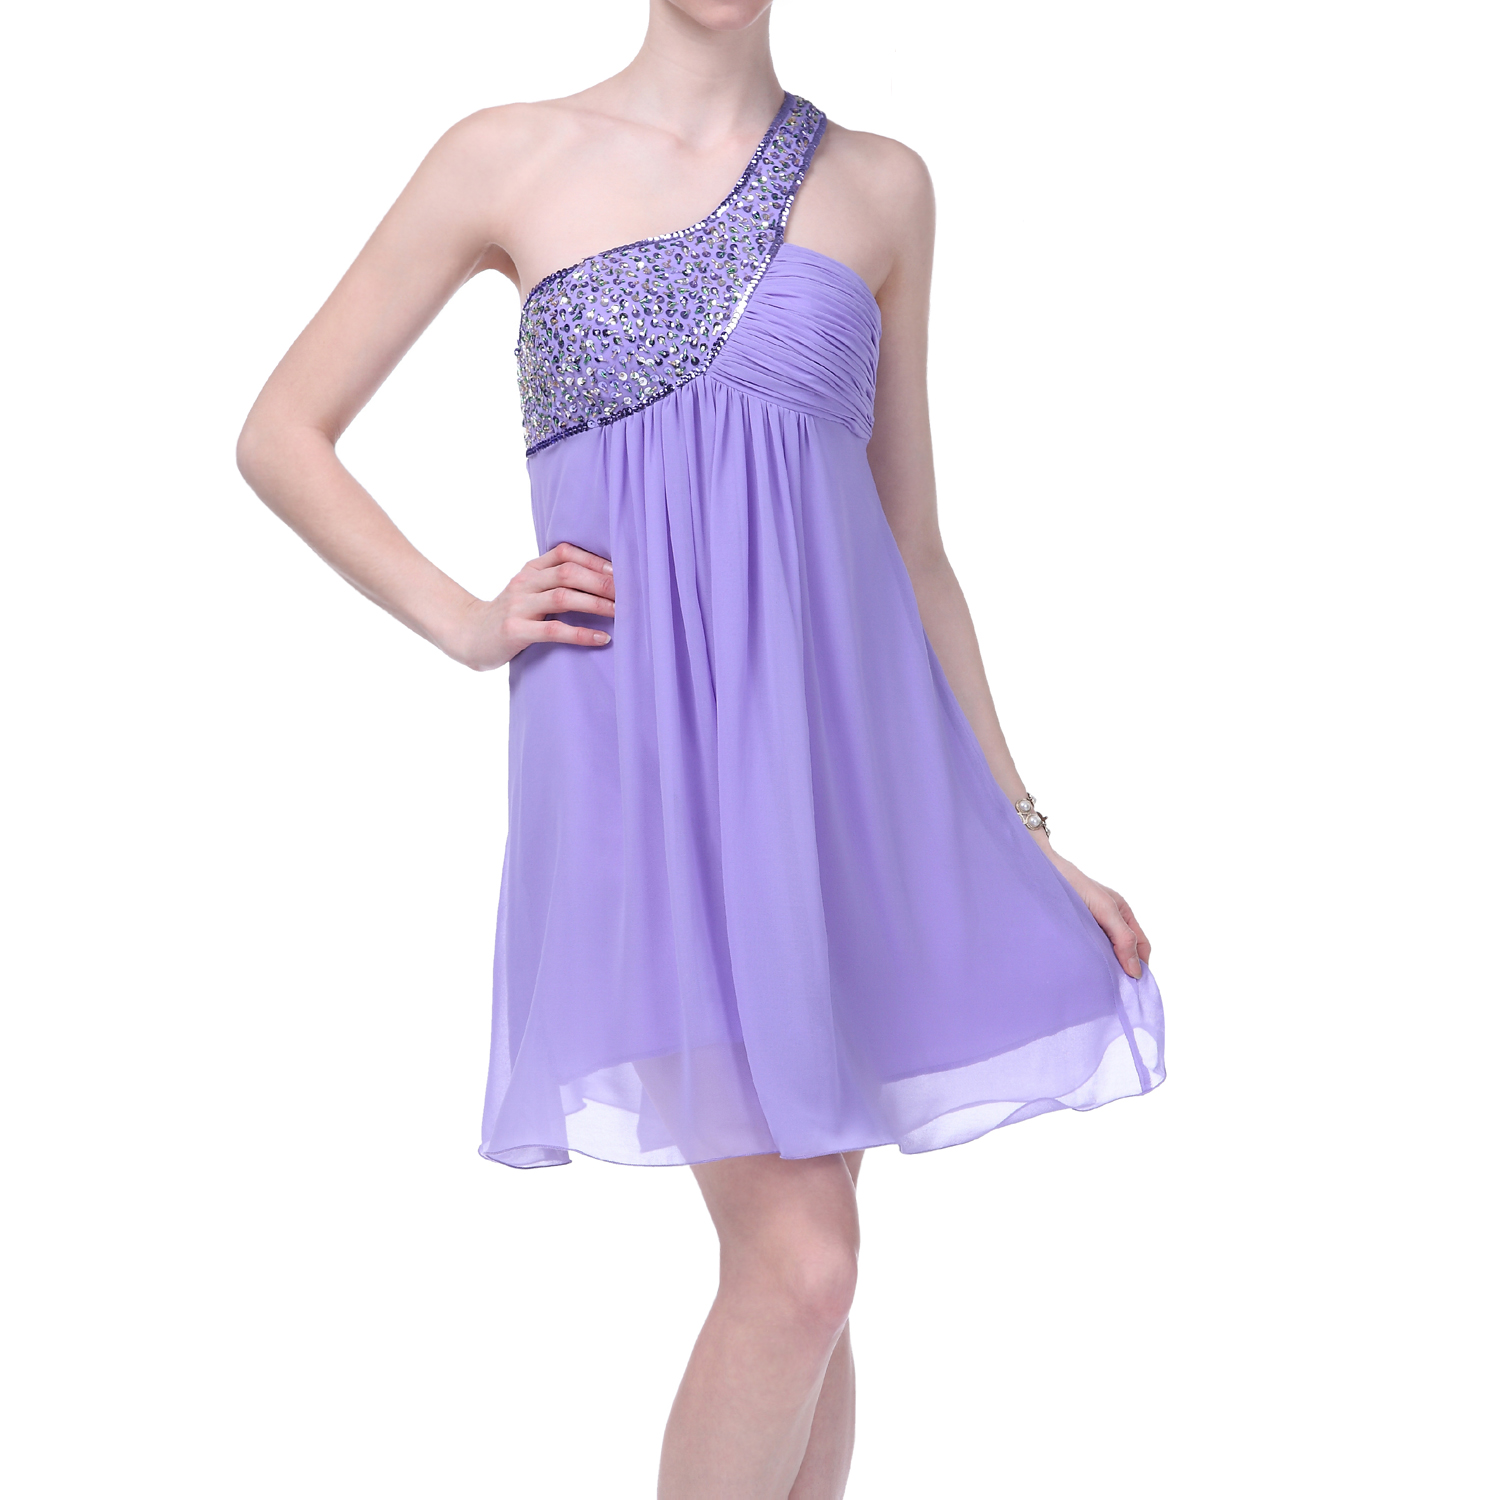 Formal Dress One Shoulder Evening Gown Beaded Bridesmaid Wedding ...